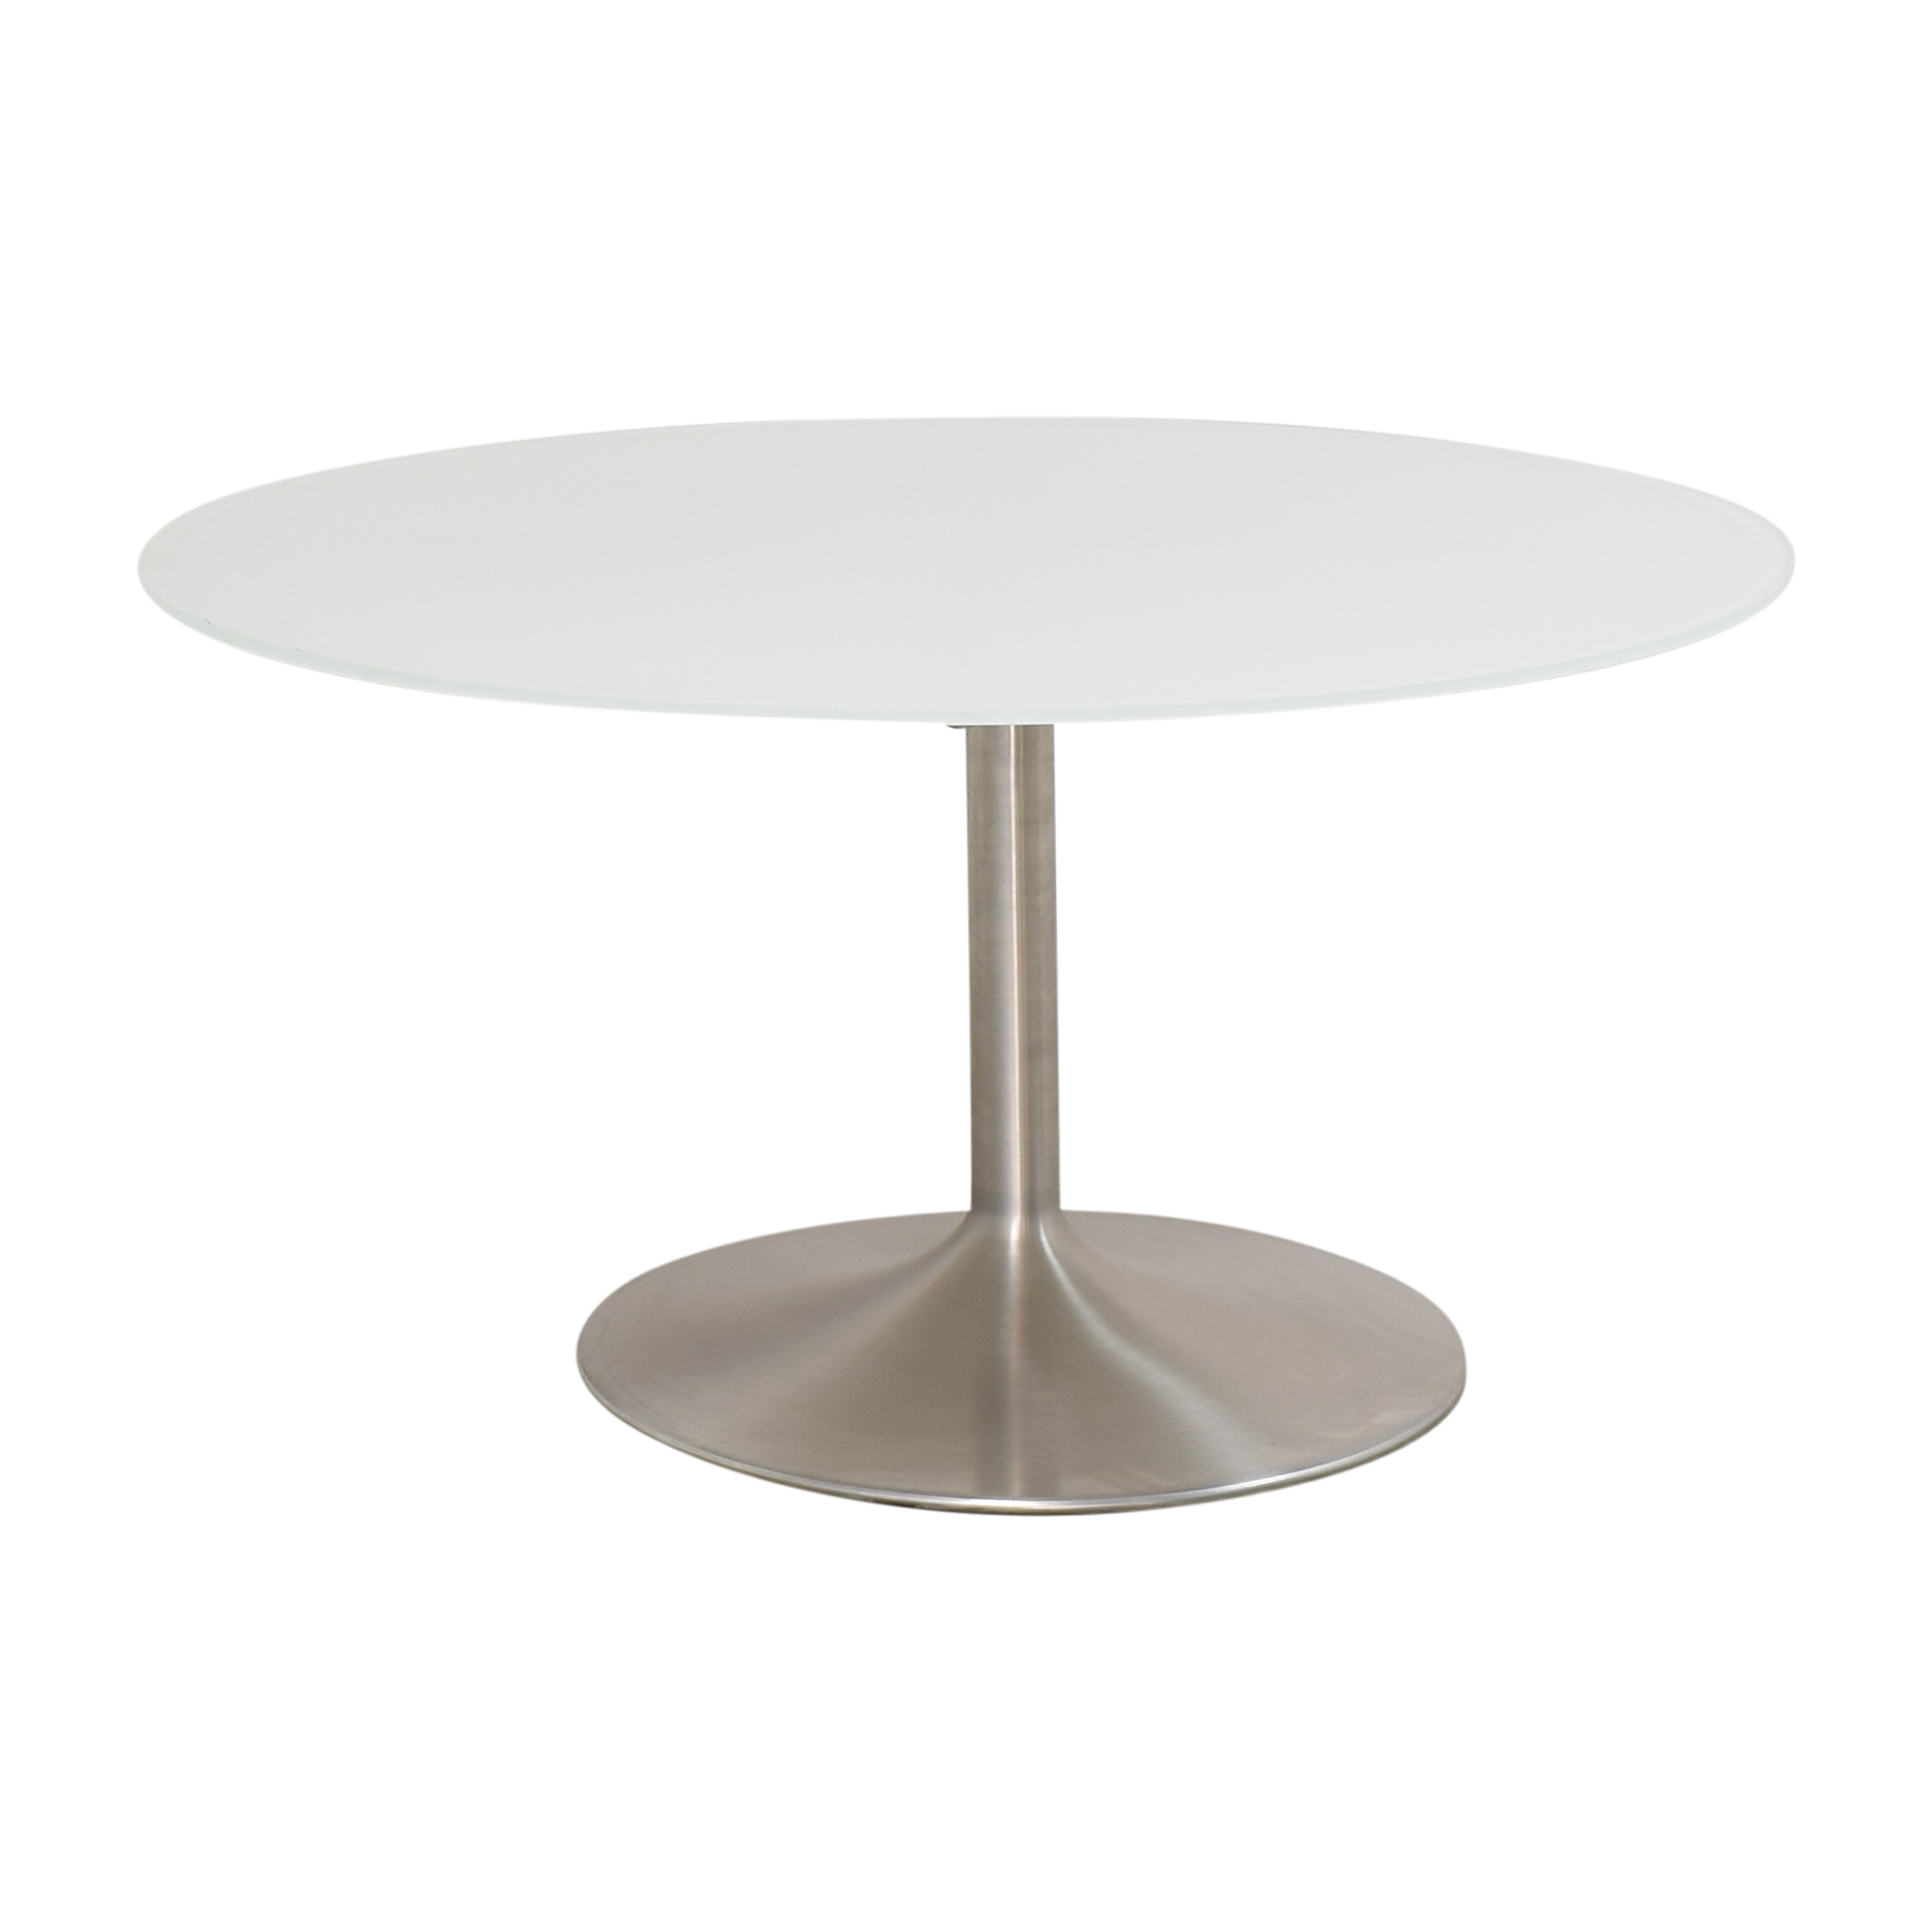 shop Room & Board Aria Round Conference Table Room & Board Dinner Tables